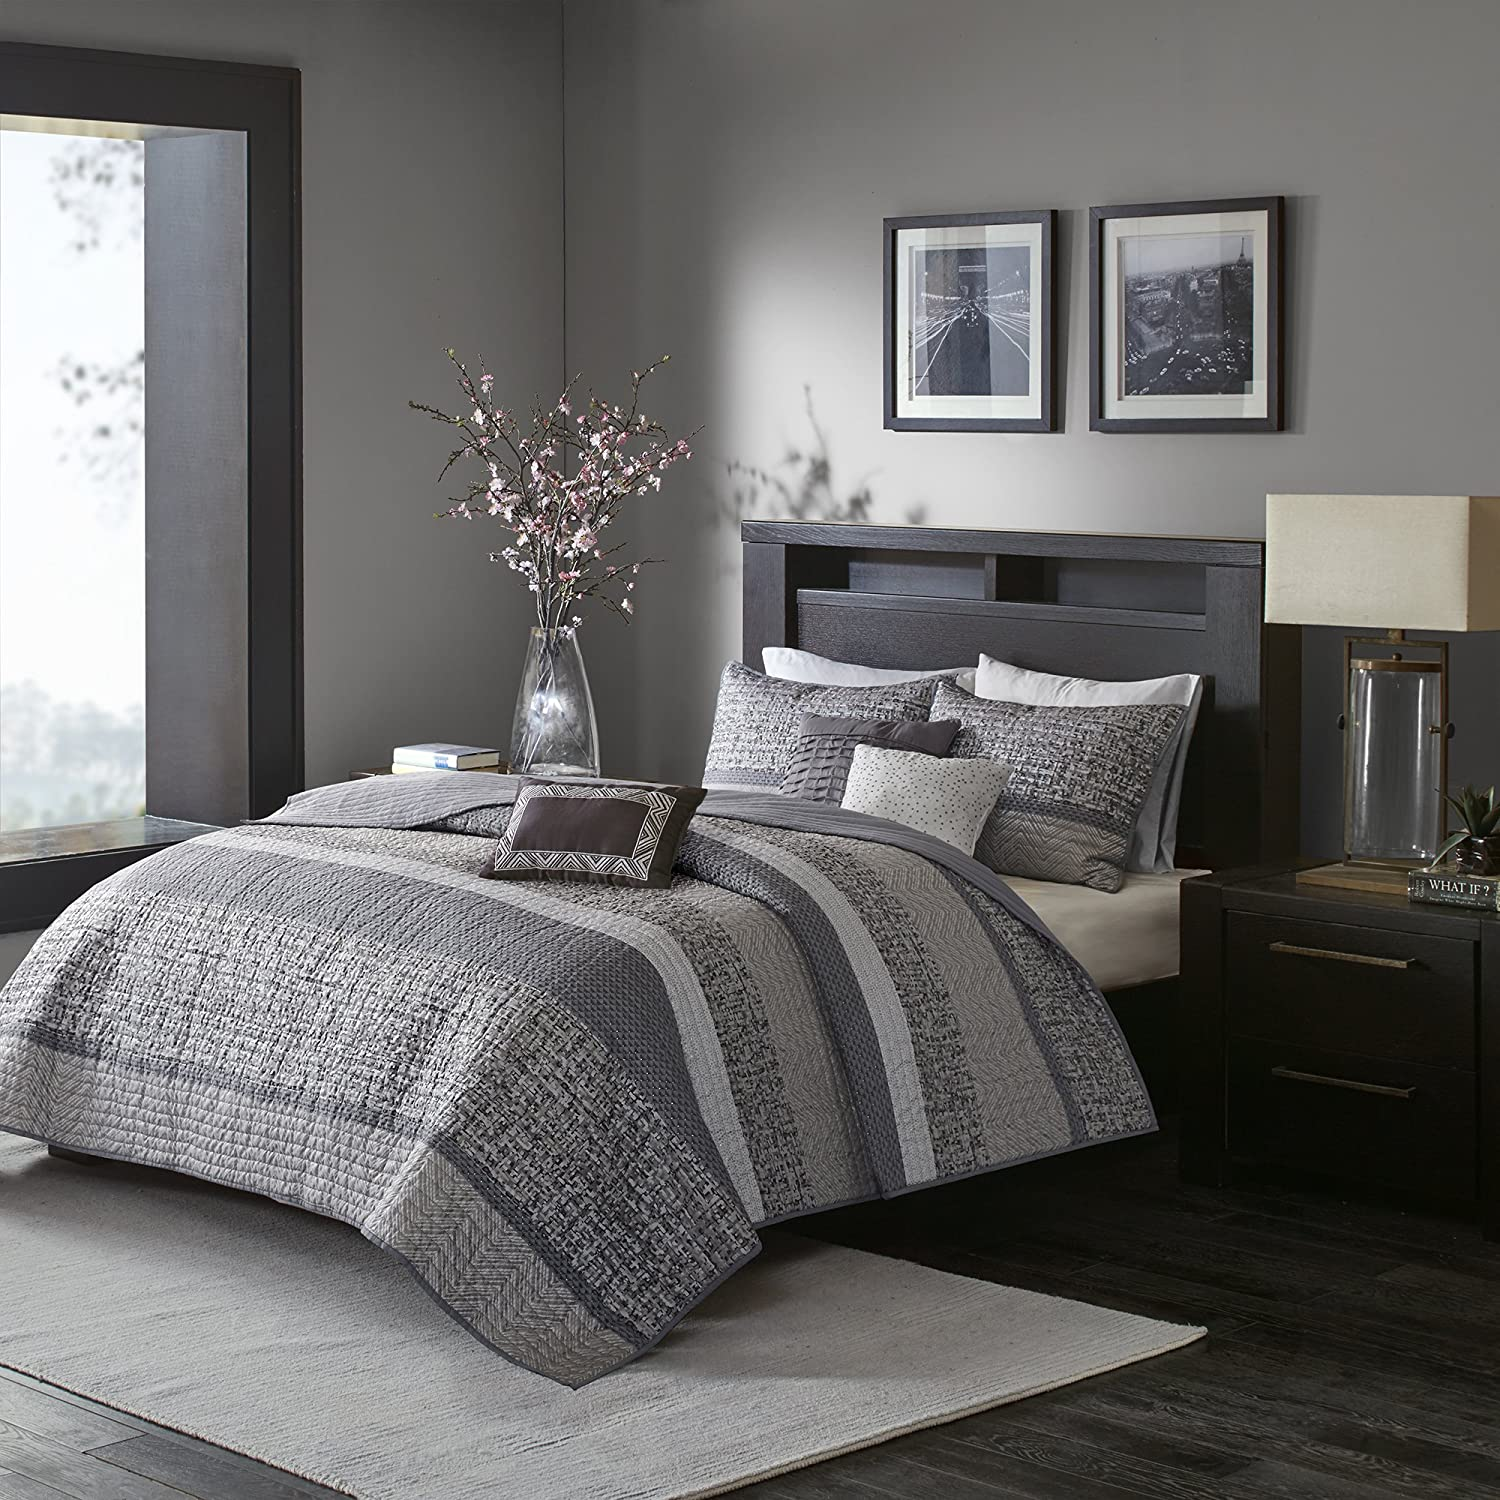 Madison Park Rhapsody Full/Queen Size Quilt Bedding Set - Grey, Striped – 6 Piece Bedding Quilt Coverlets – Ultra Soft Microfiber Bed Quilts Quilted Coverlet MP13-3399